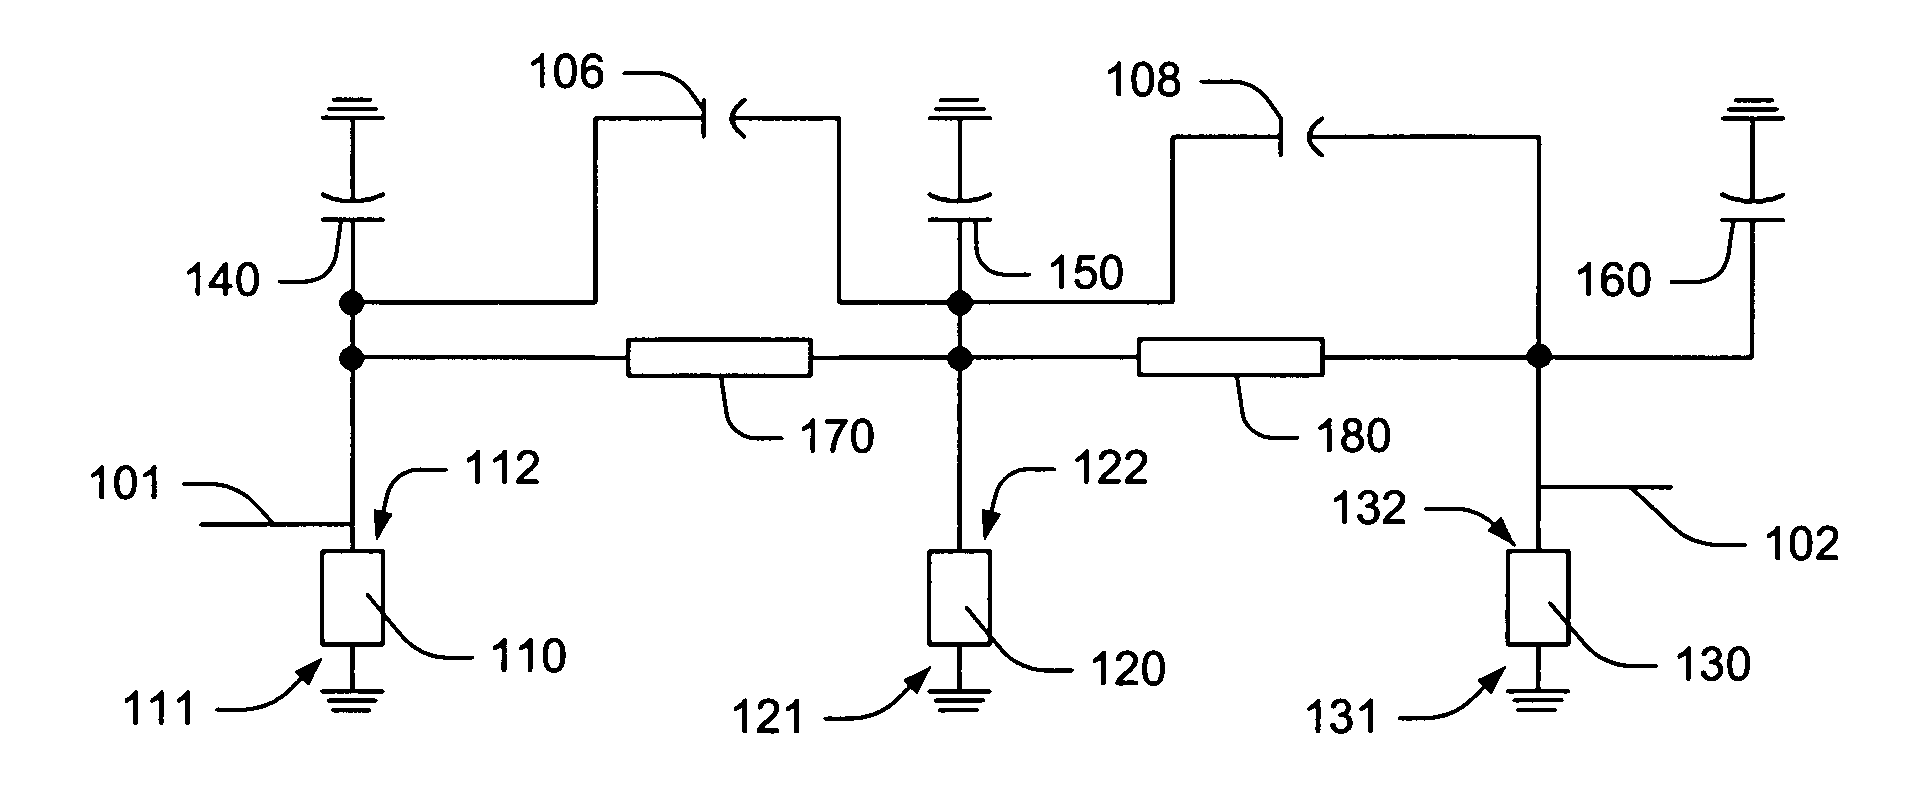 Patent Us8680952 Bandpass Filter With Dual Band Response Google Notchfilter Filtercircuit Basiccircuit Circuit Diagram Drawing